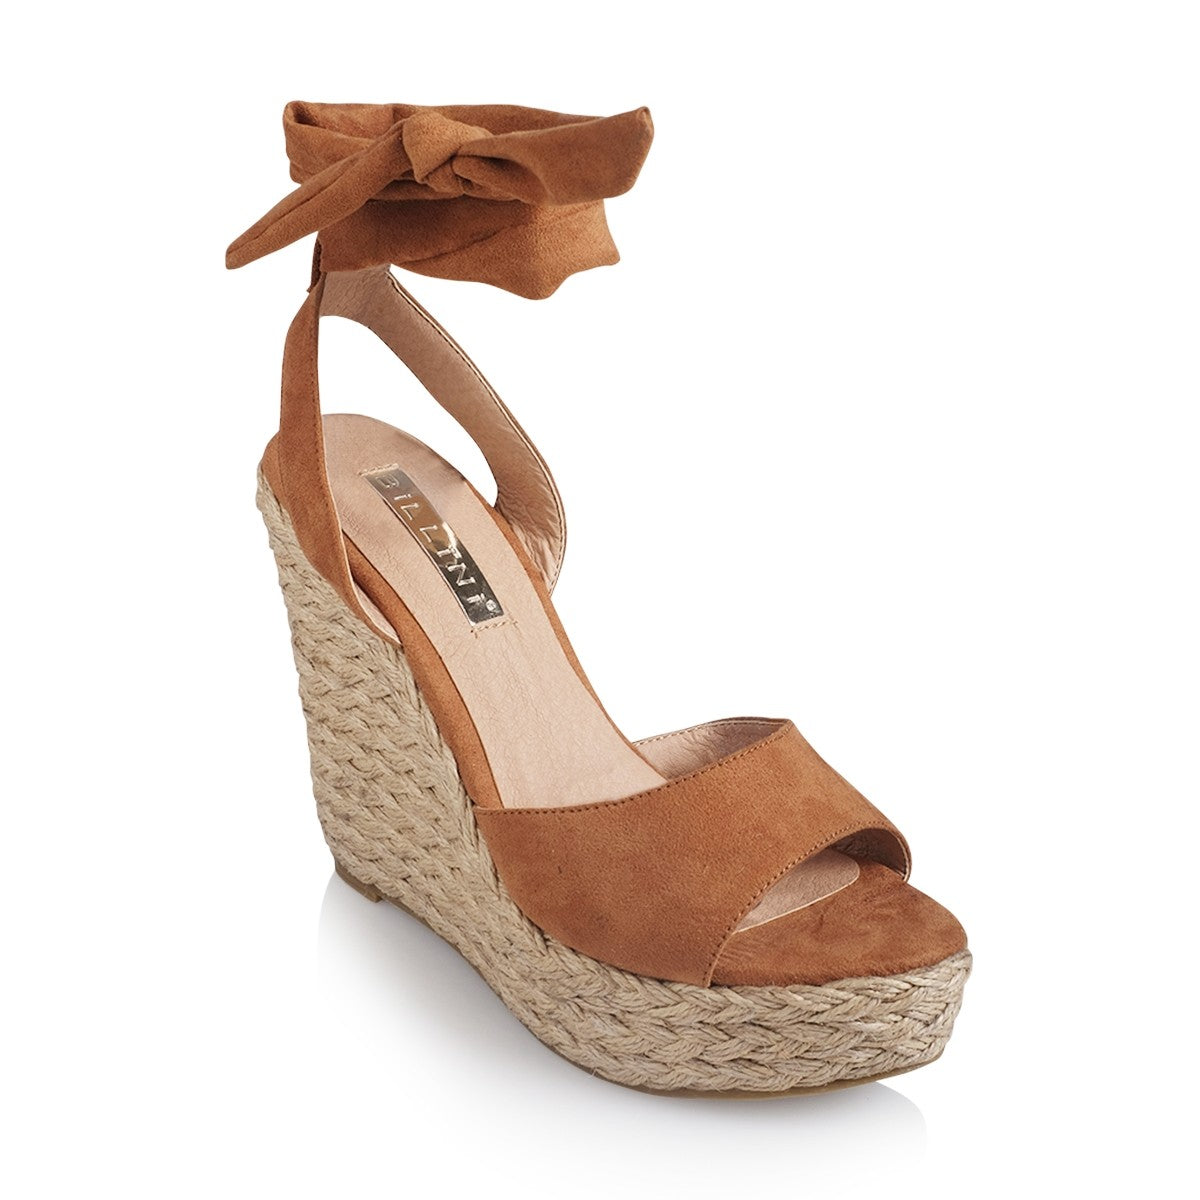 Billini - Skyros Wedge - Tan Suede